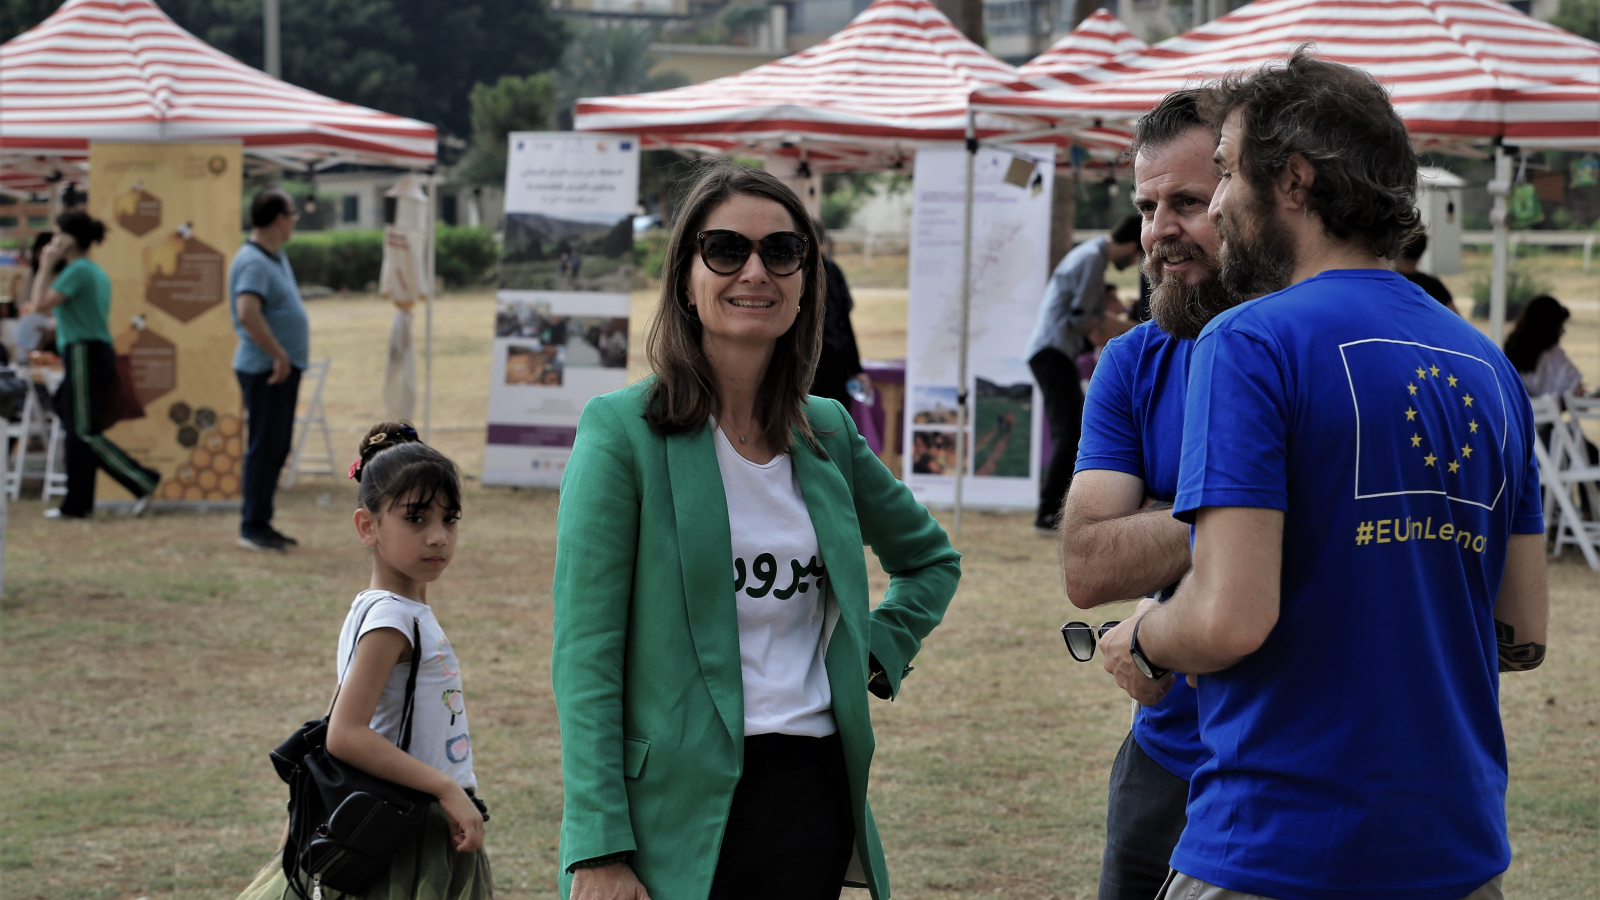 Christina Lassen, ambassador and head of the EU delegation in Lebanon